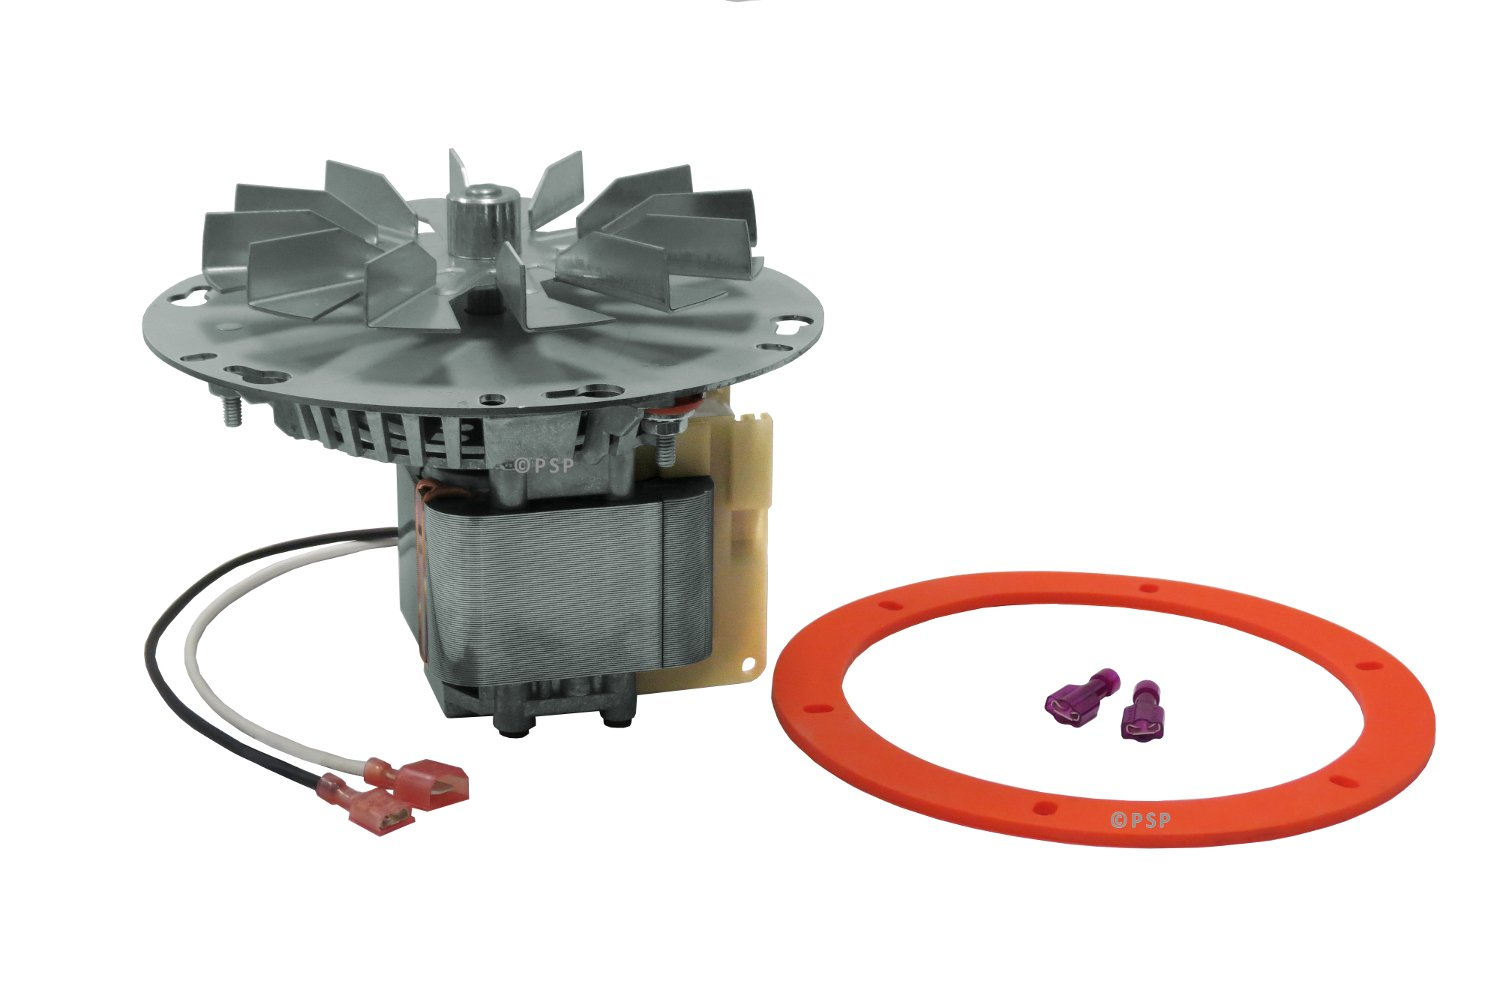 Breckwell, Enviro, Vista-Flame, Pellet Stove Exhaust Combustion Blower Motor Assembly 6'' Mounting Hub # A-E-027, EF-161A